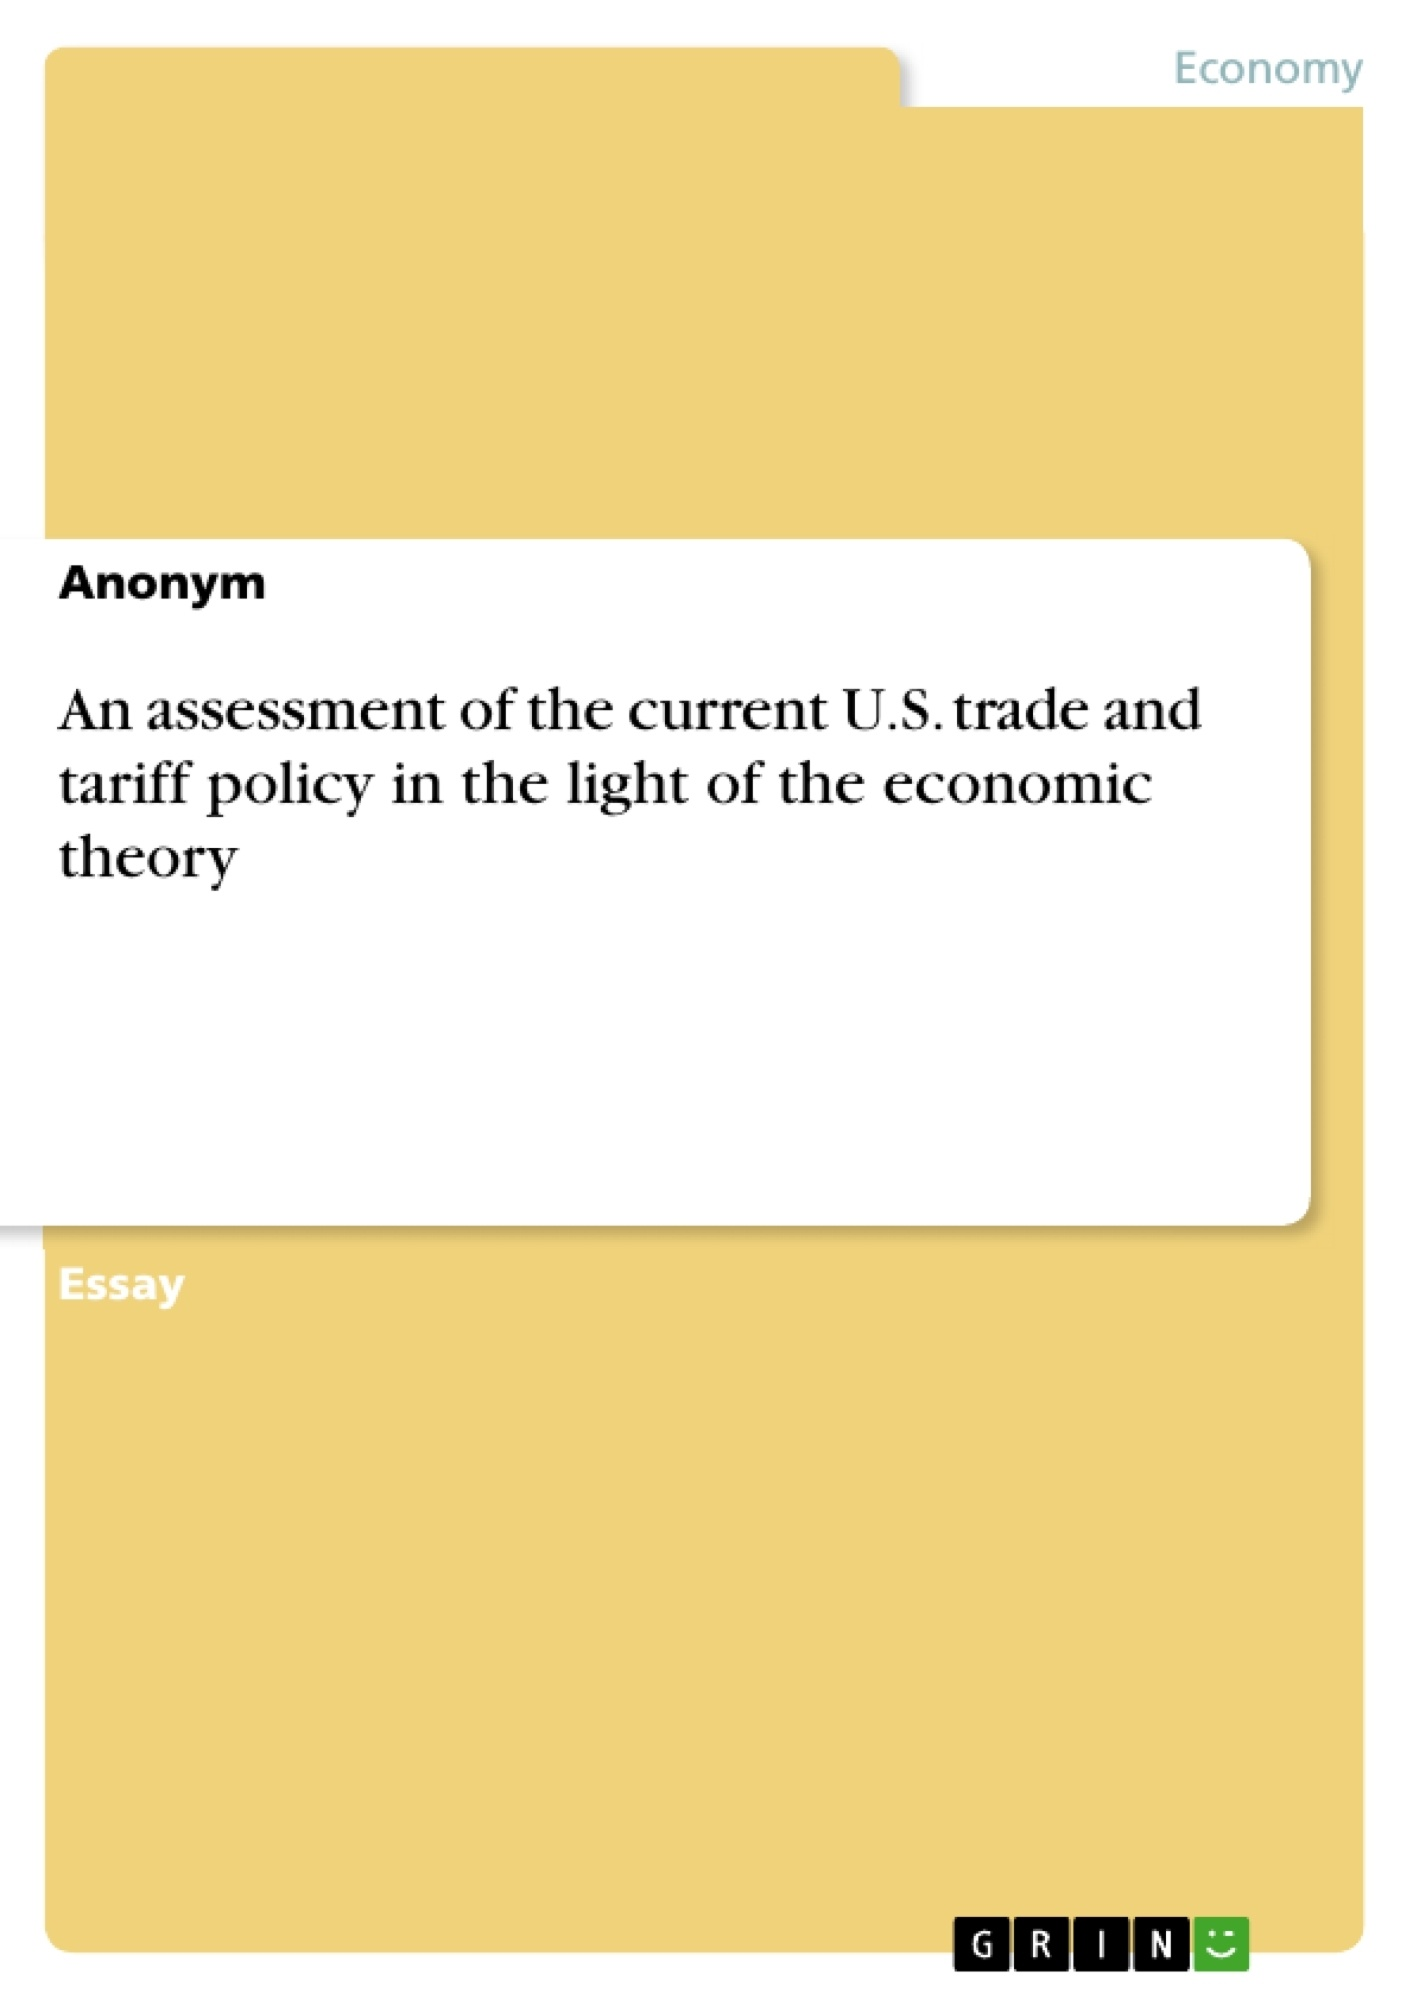 Title: An assessment of the current U.S. trade and tariff policy in the light of the economic theory